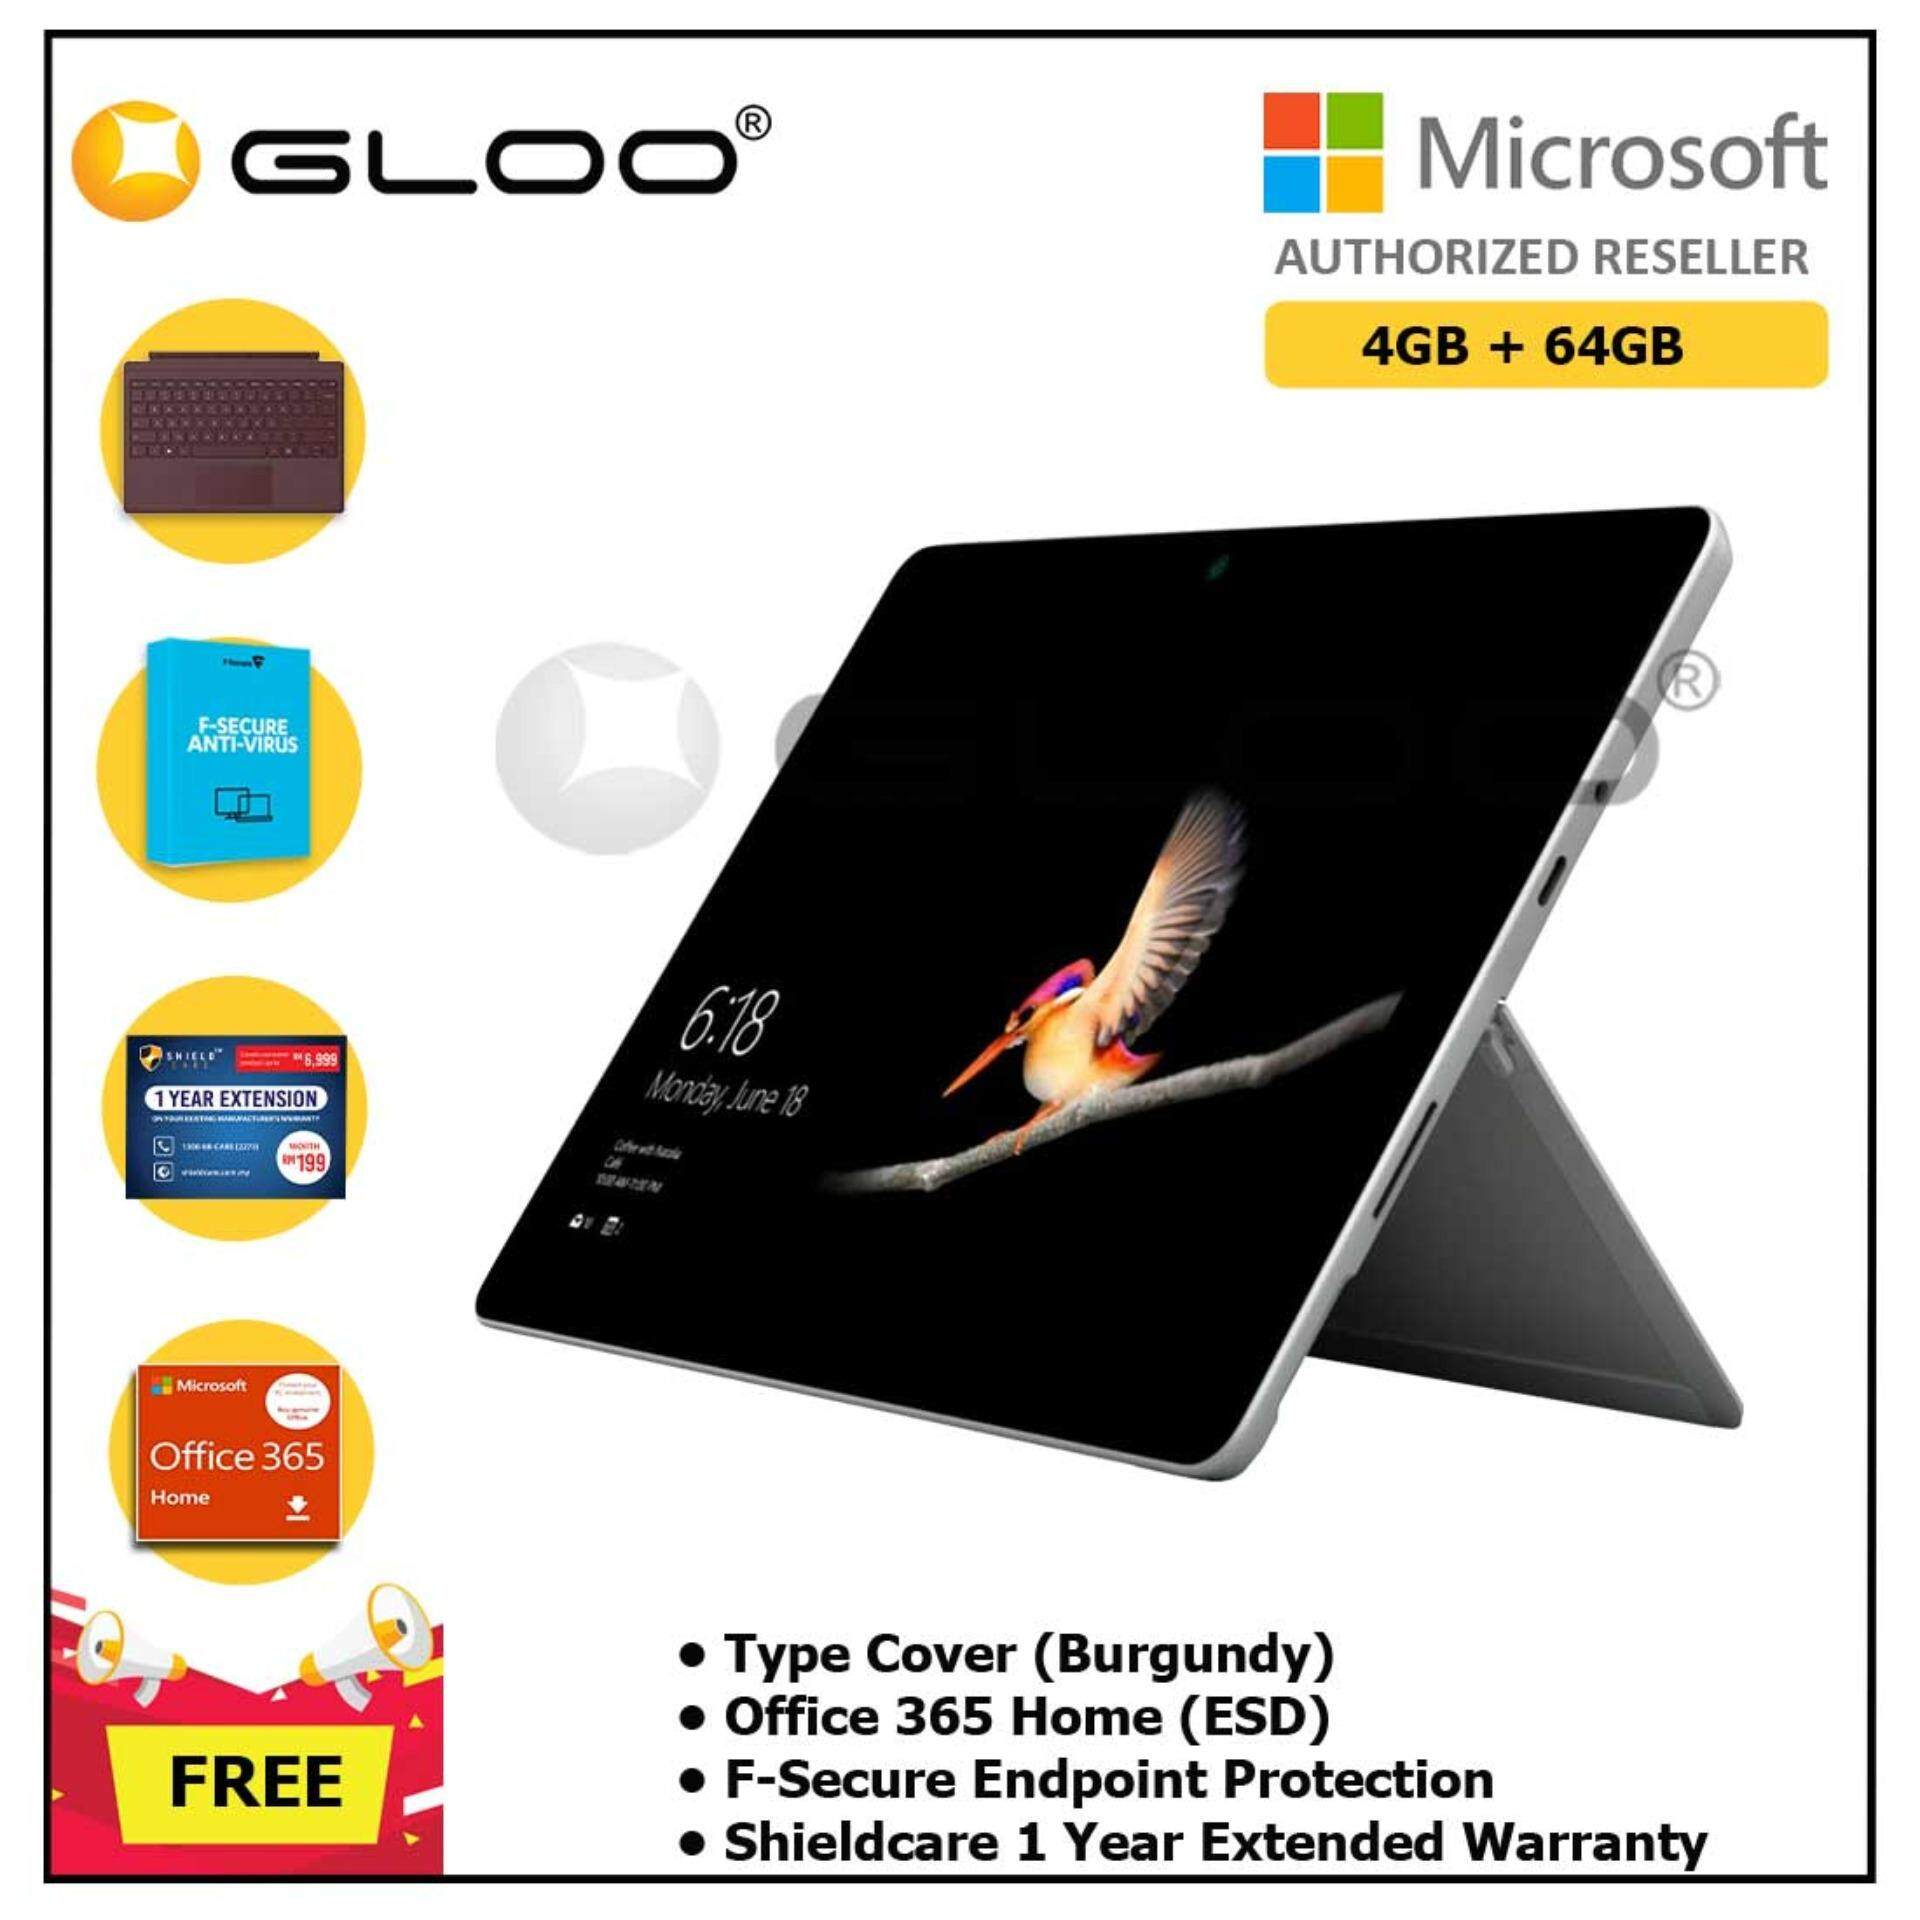 Surface Go Y/4GB 64GB + Surface Go Type Cover Burgundy + Shieldcare 1 Year Extended Warranty + F-Secure EndPoint Protection + Office 365 Home ESD